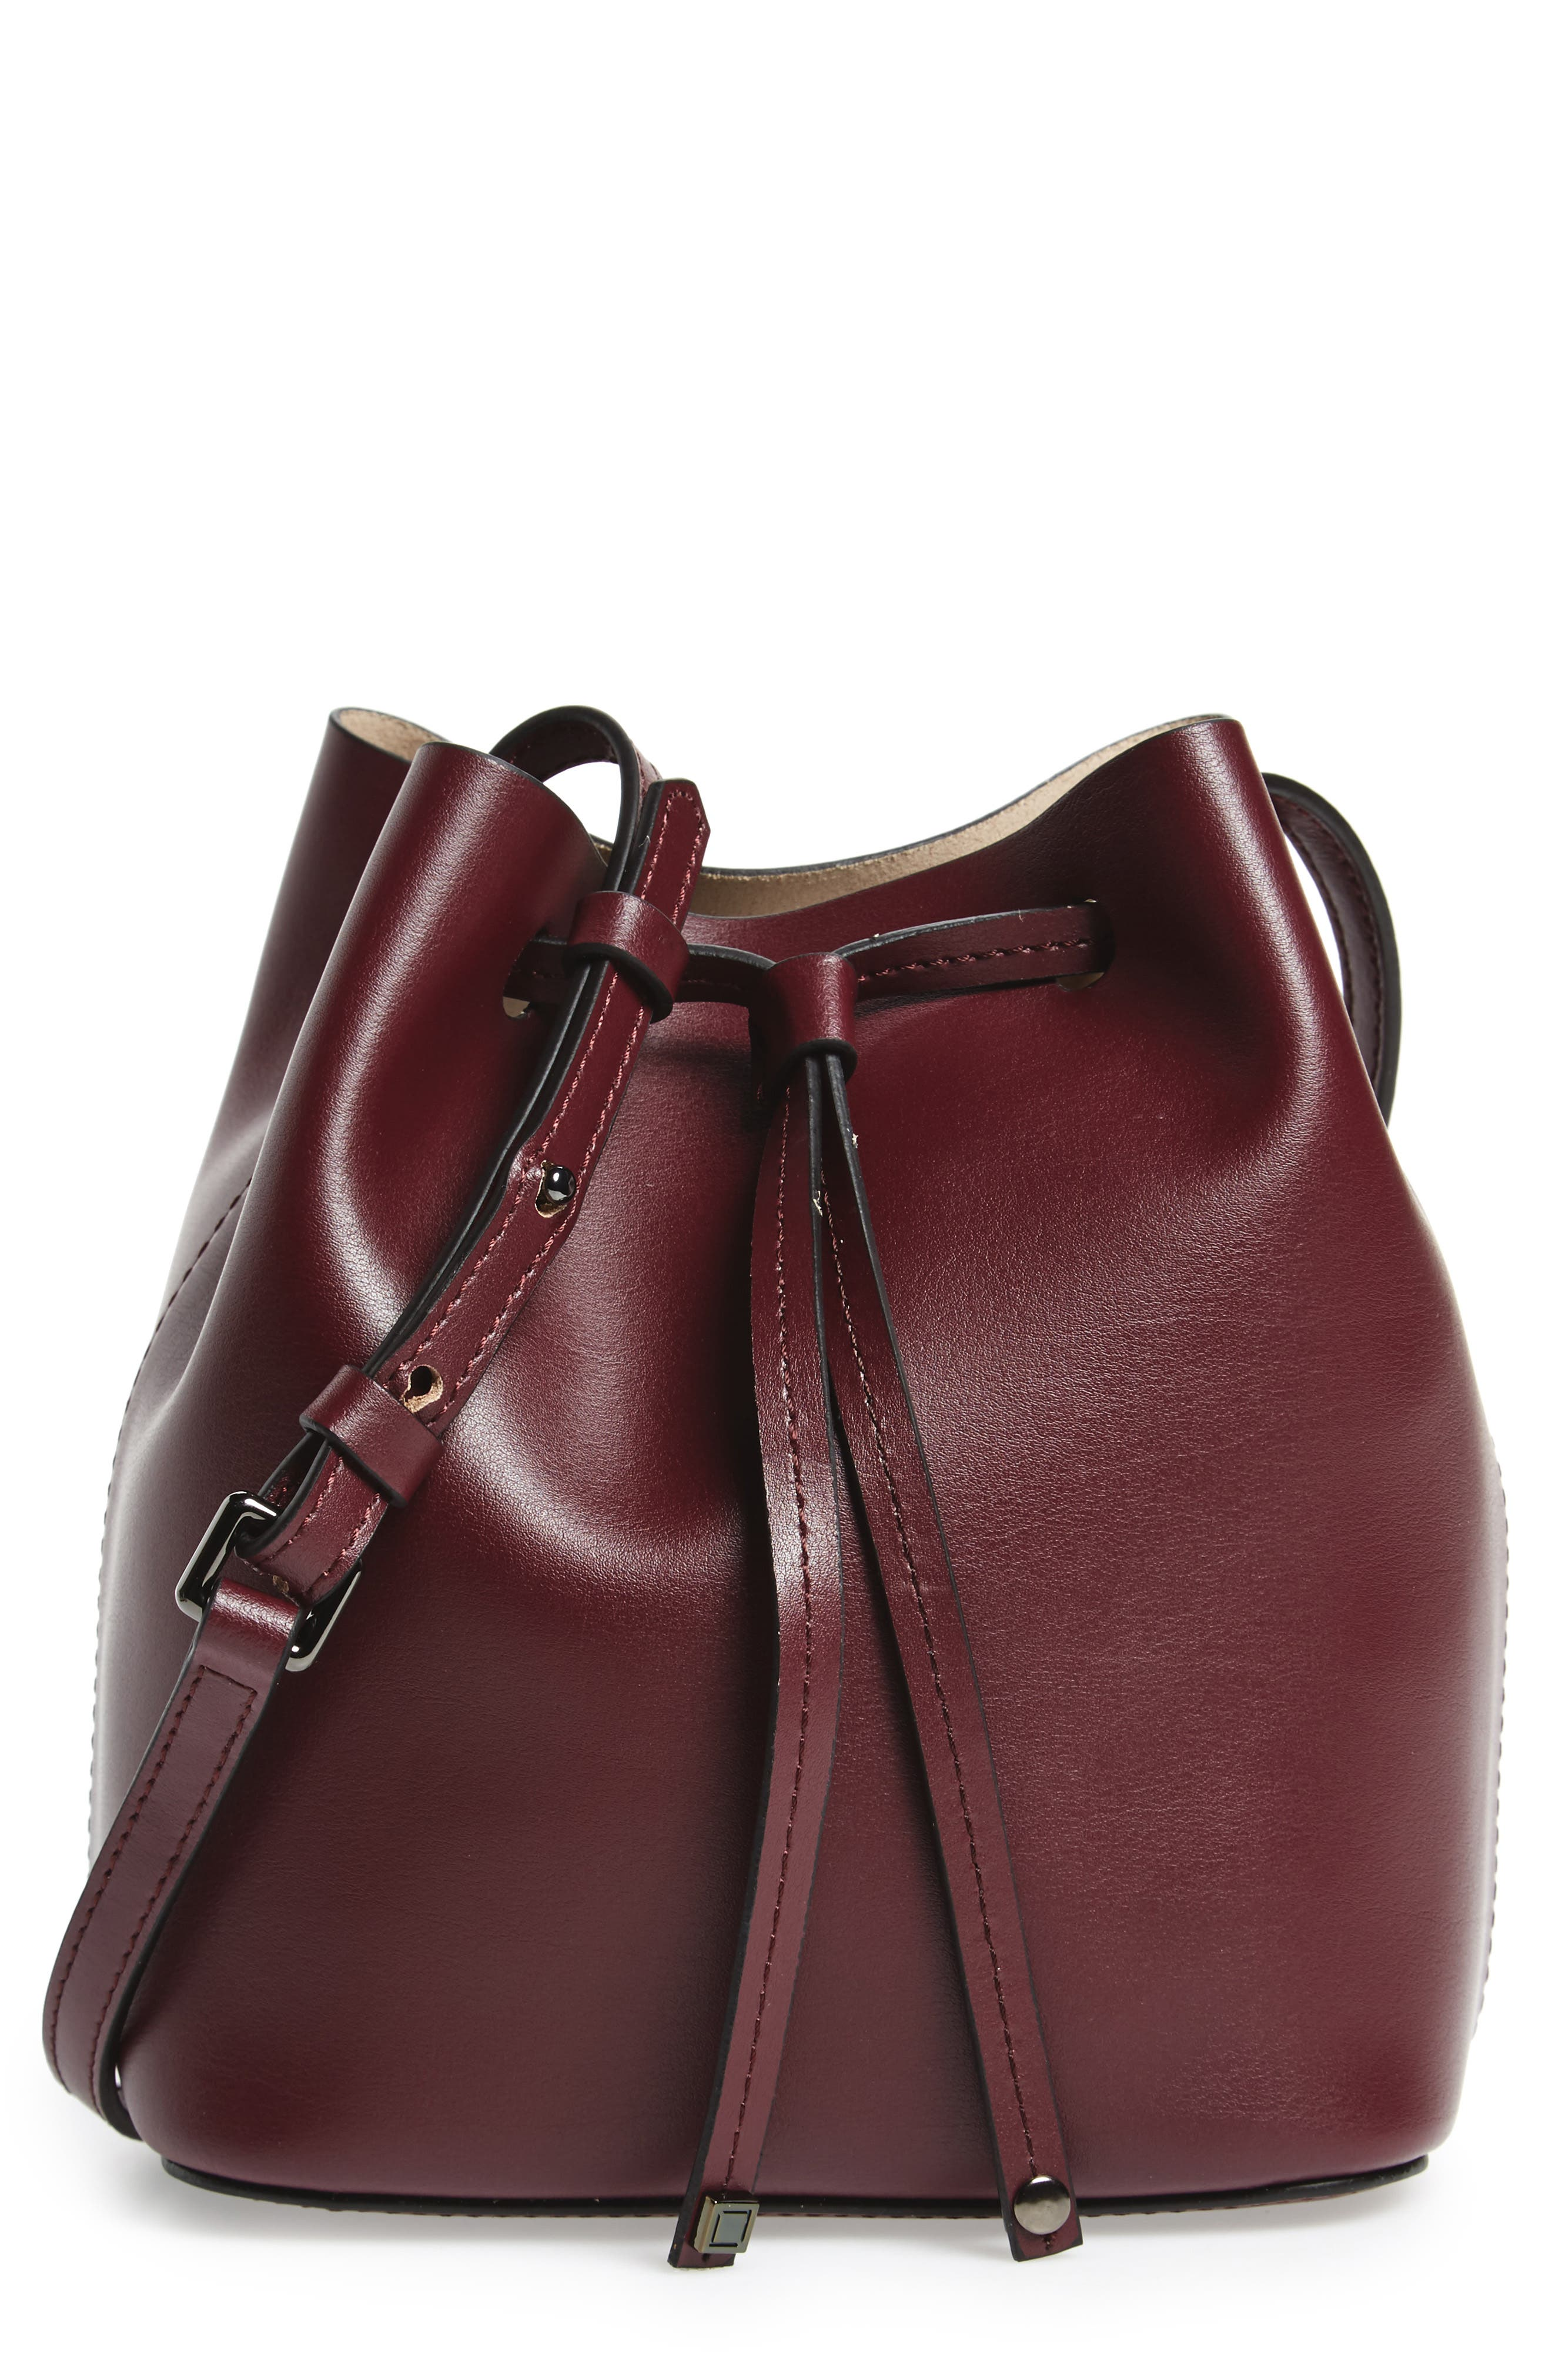 Lodis Small Silicon Valley Blake RFID Leather Bucket Bag